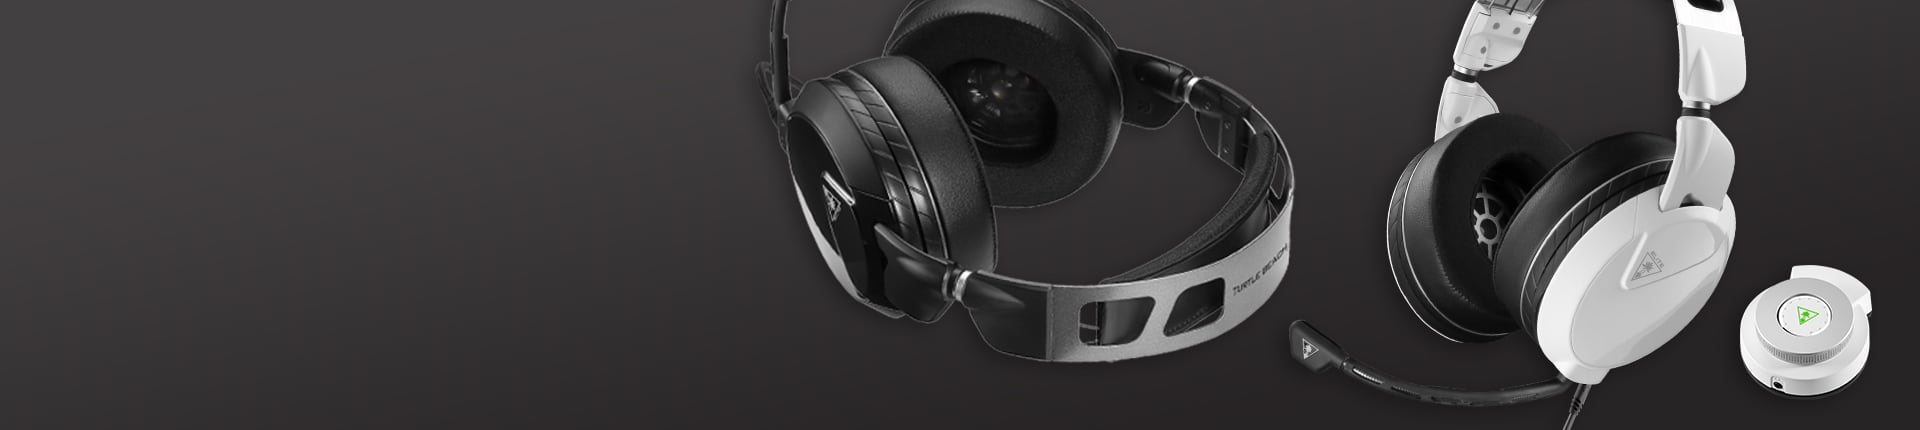 Beste esport-Gaming-Headsets